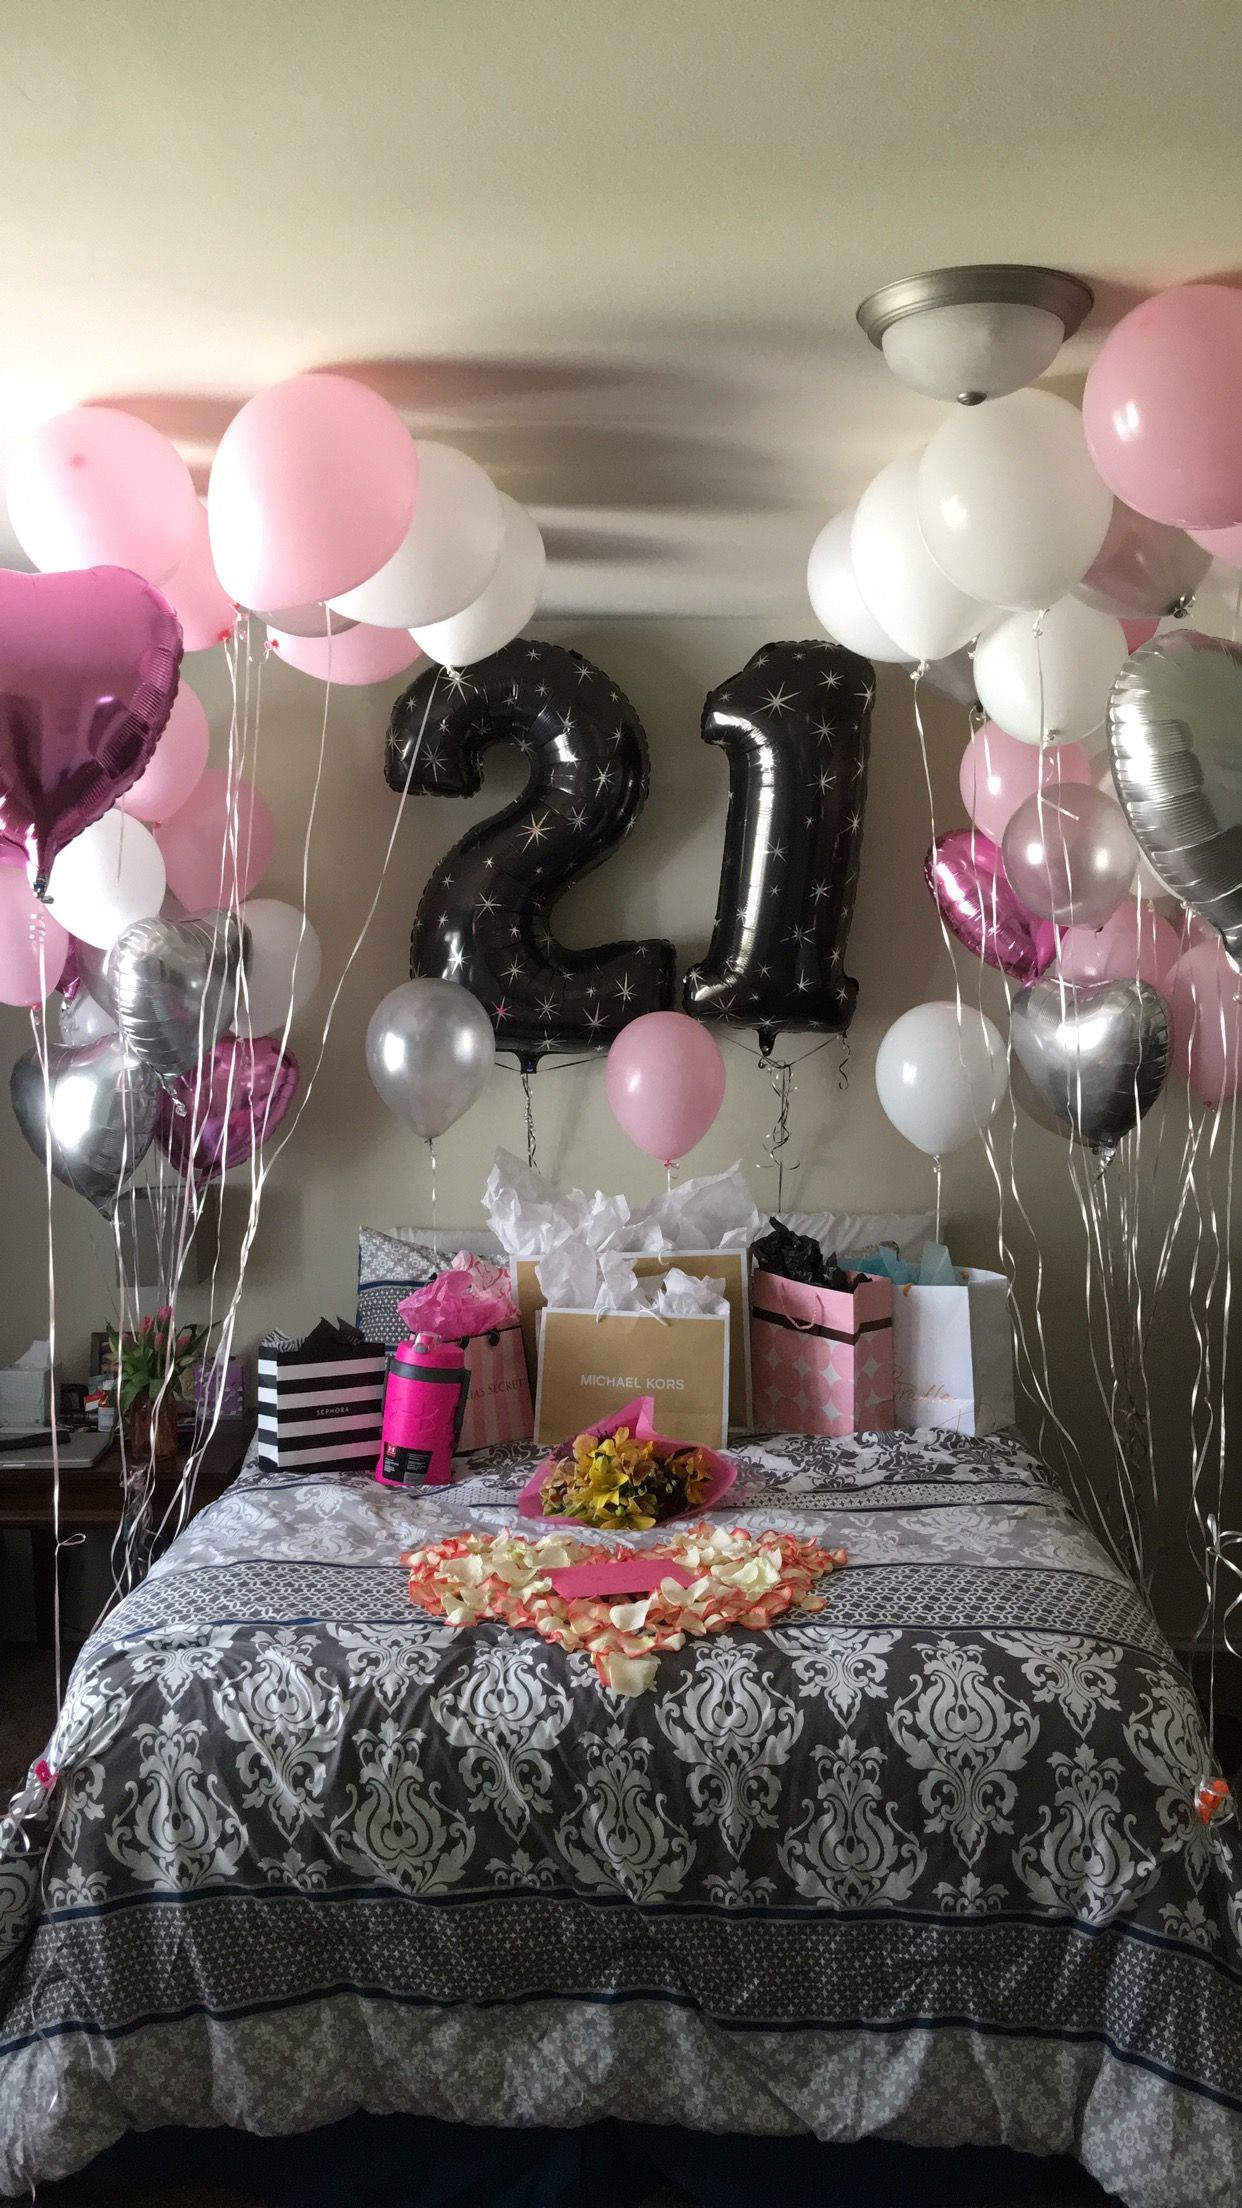 Best ideas about Birthday Decorations For Her . Save or Pin 21st Birthday surprise Girlfriends Birthday Now.